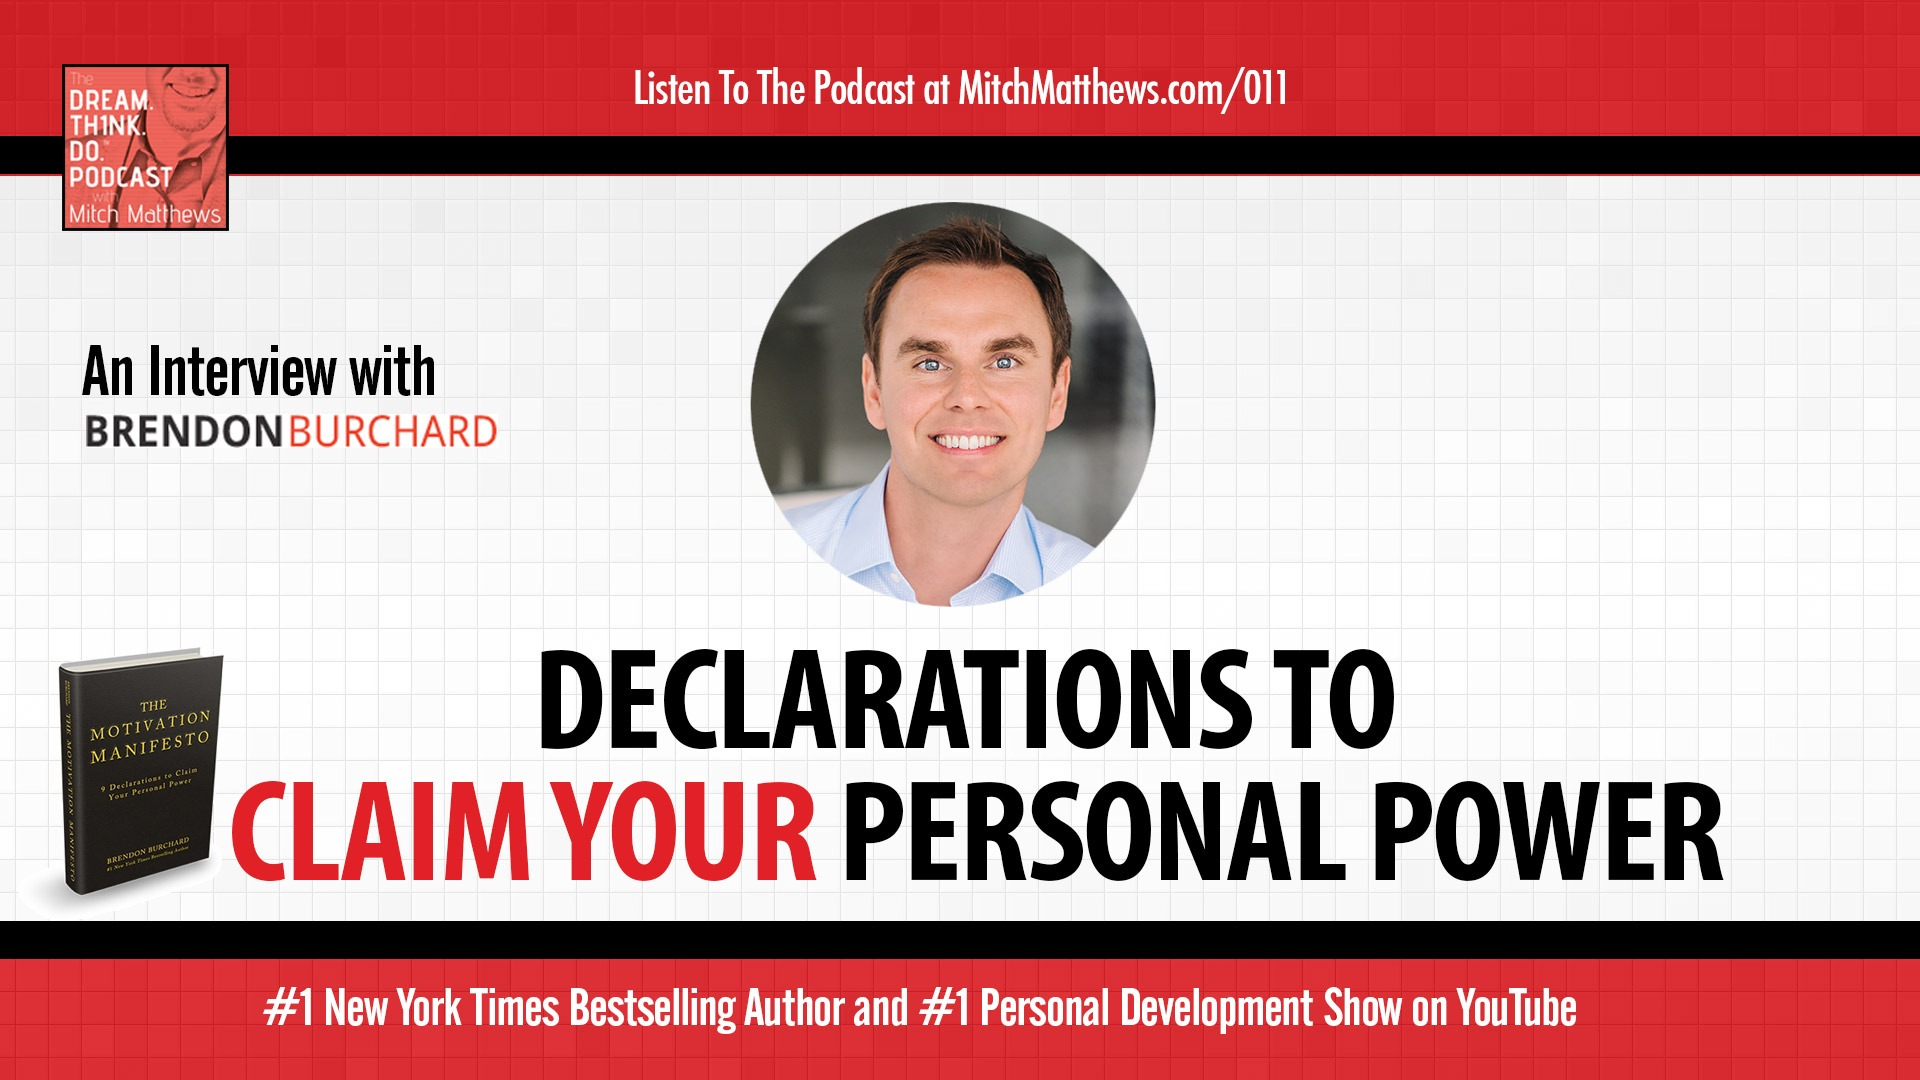 brendon burchard declarations to claim your personal power 19 feb brendon burchard declarations to claim your personal power